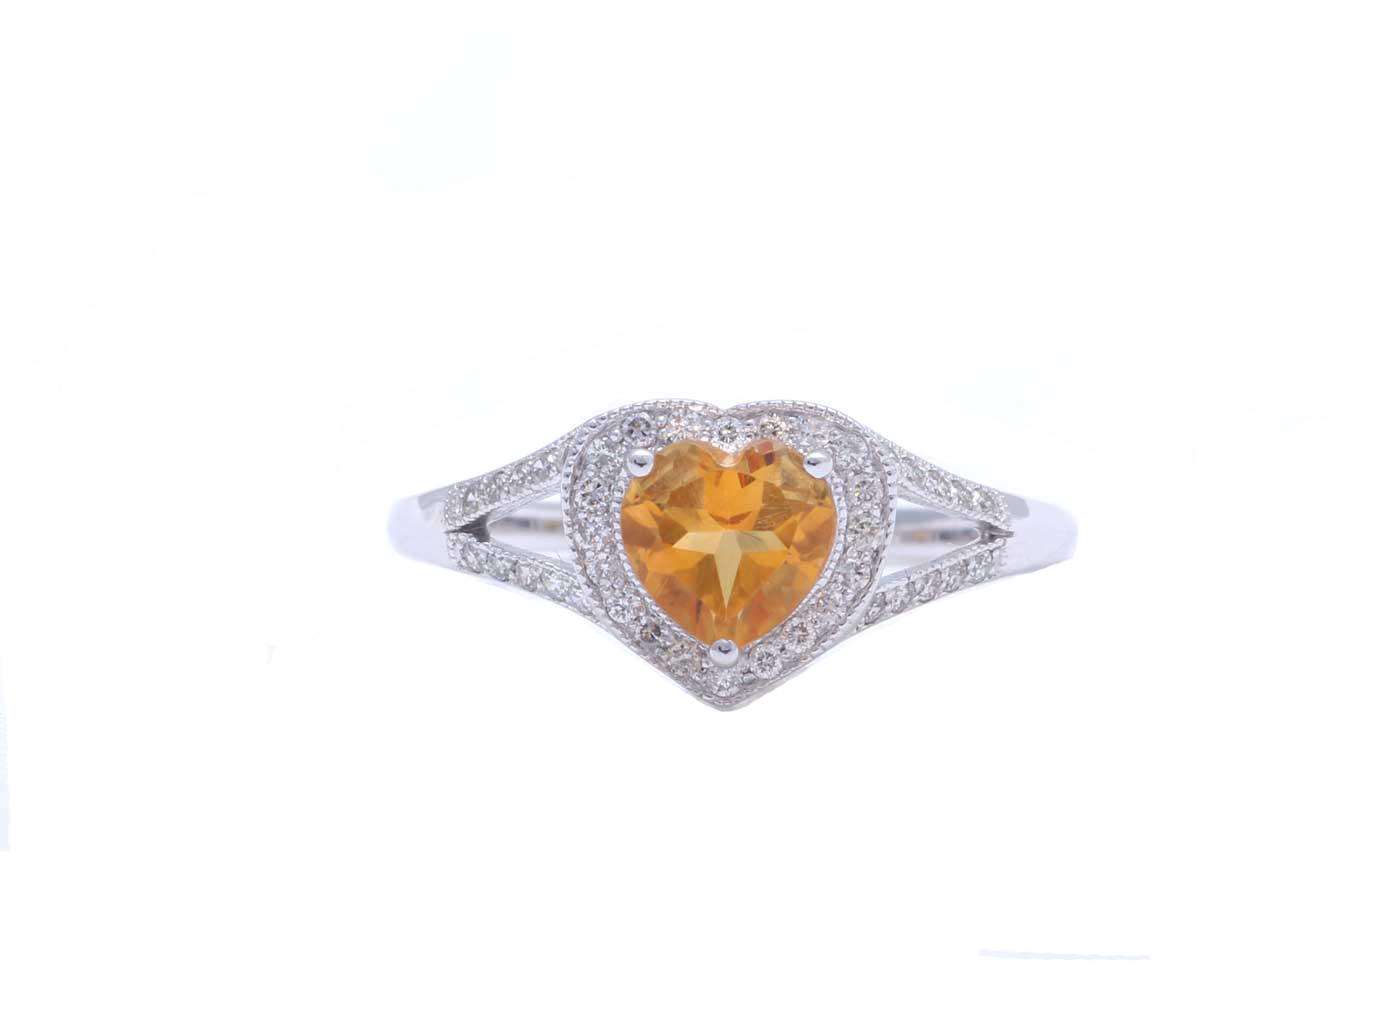 Lot 56 - 9ct White Gold Heart Shape Citrine Diamond Ring 0.20 Carats